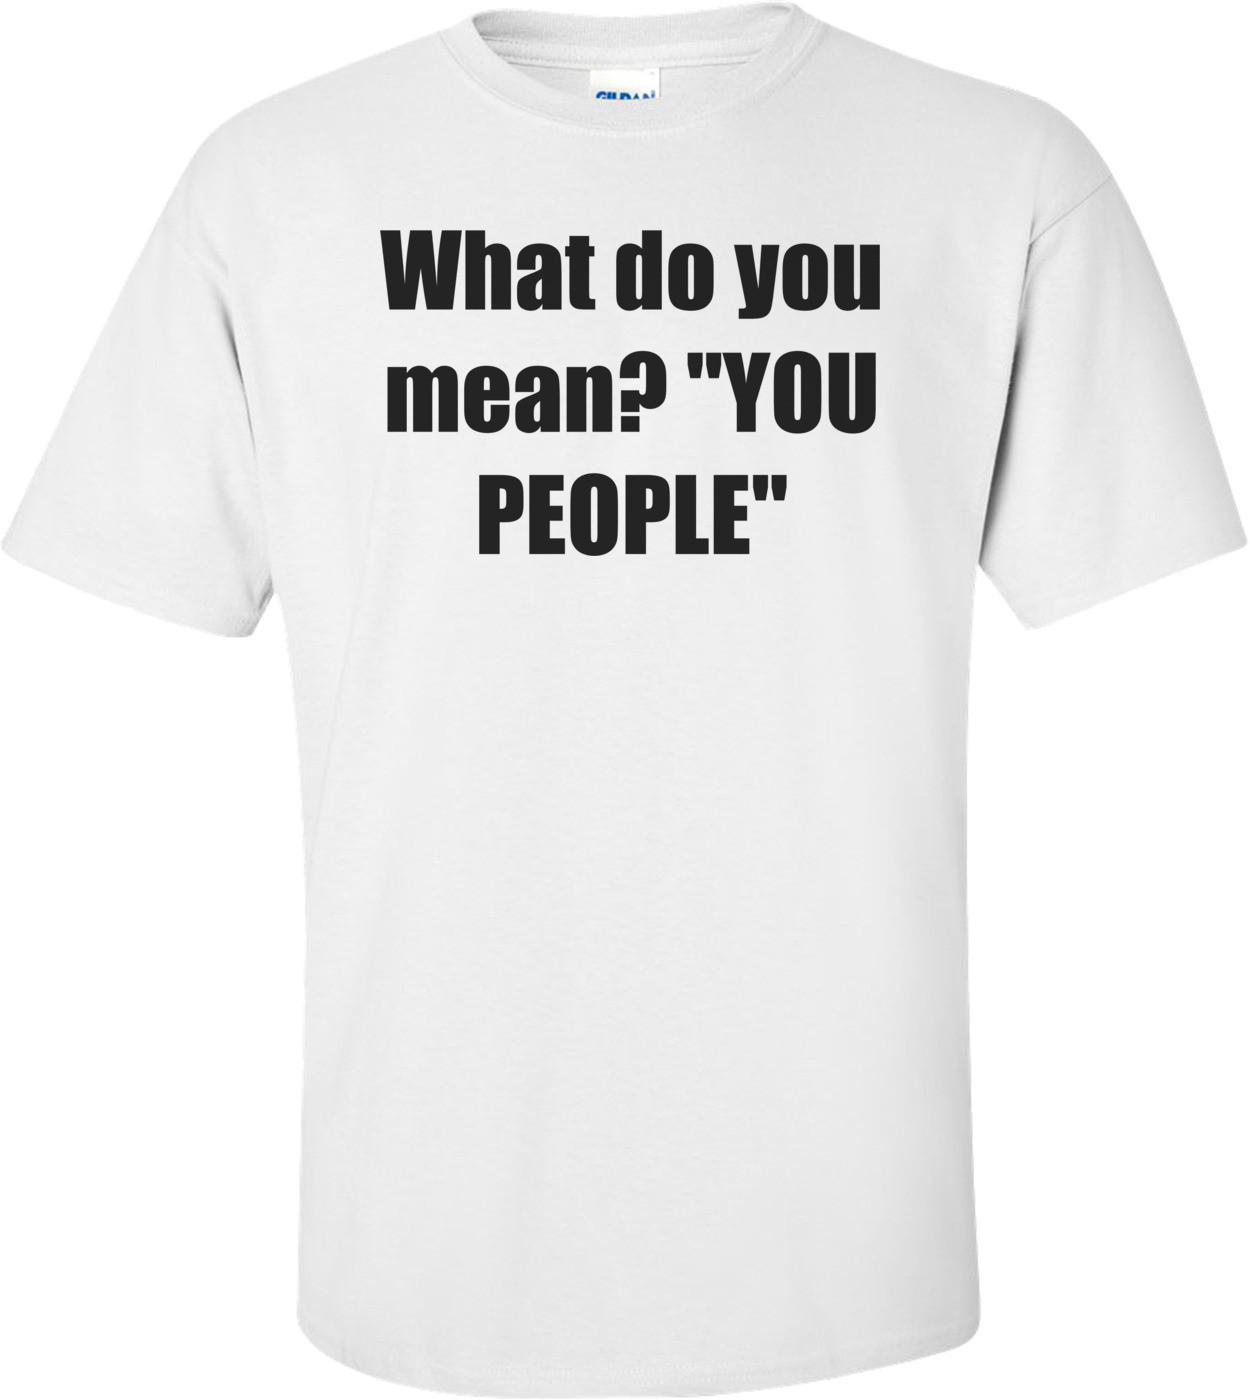 "What do you mean? ""YOU PEOPLE"" Shirt"